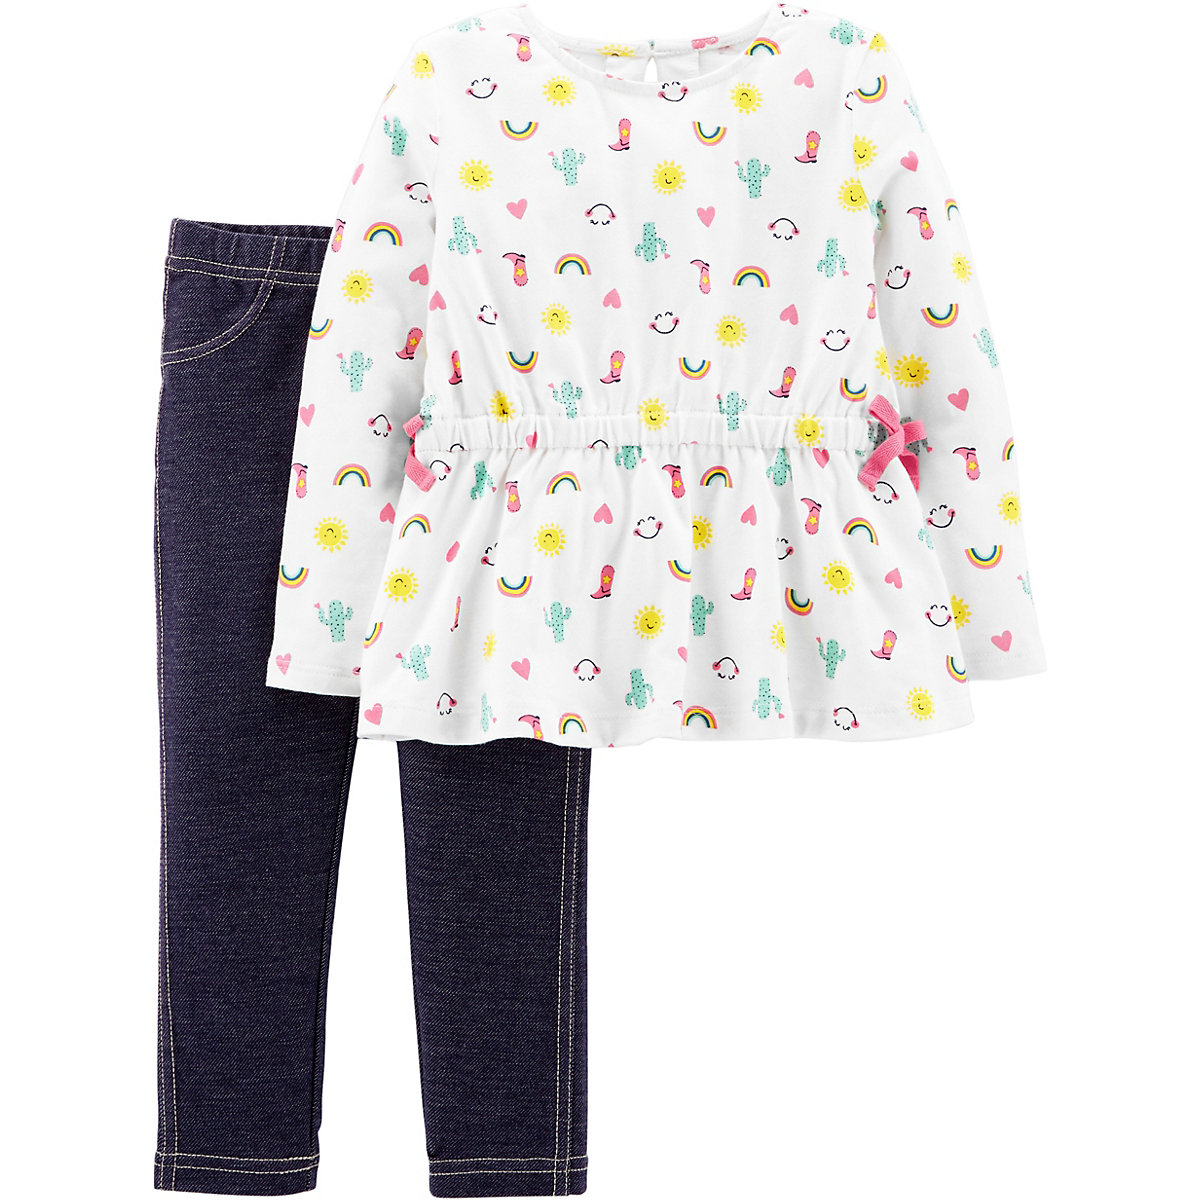 Carter's Children's Sets 10266991 Cotton Girls Casual Children Clothing free shipping fall winter new fashion toddler girls outfit cotton children clothes baby 2 pieces clothing sets with pockets f072